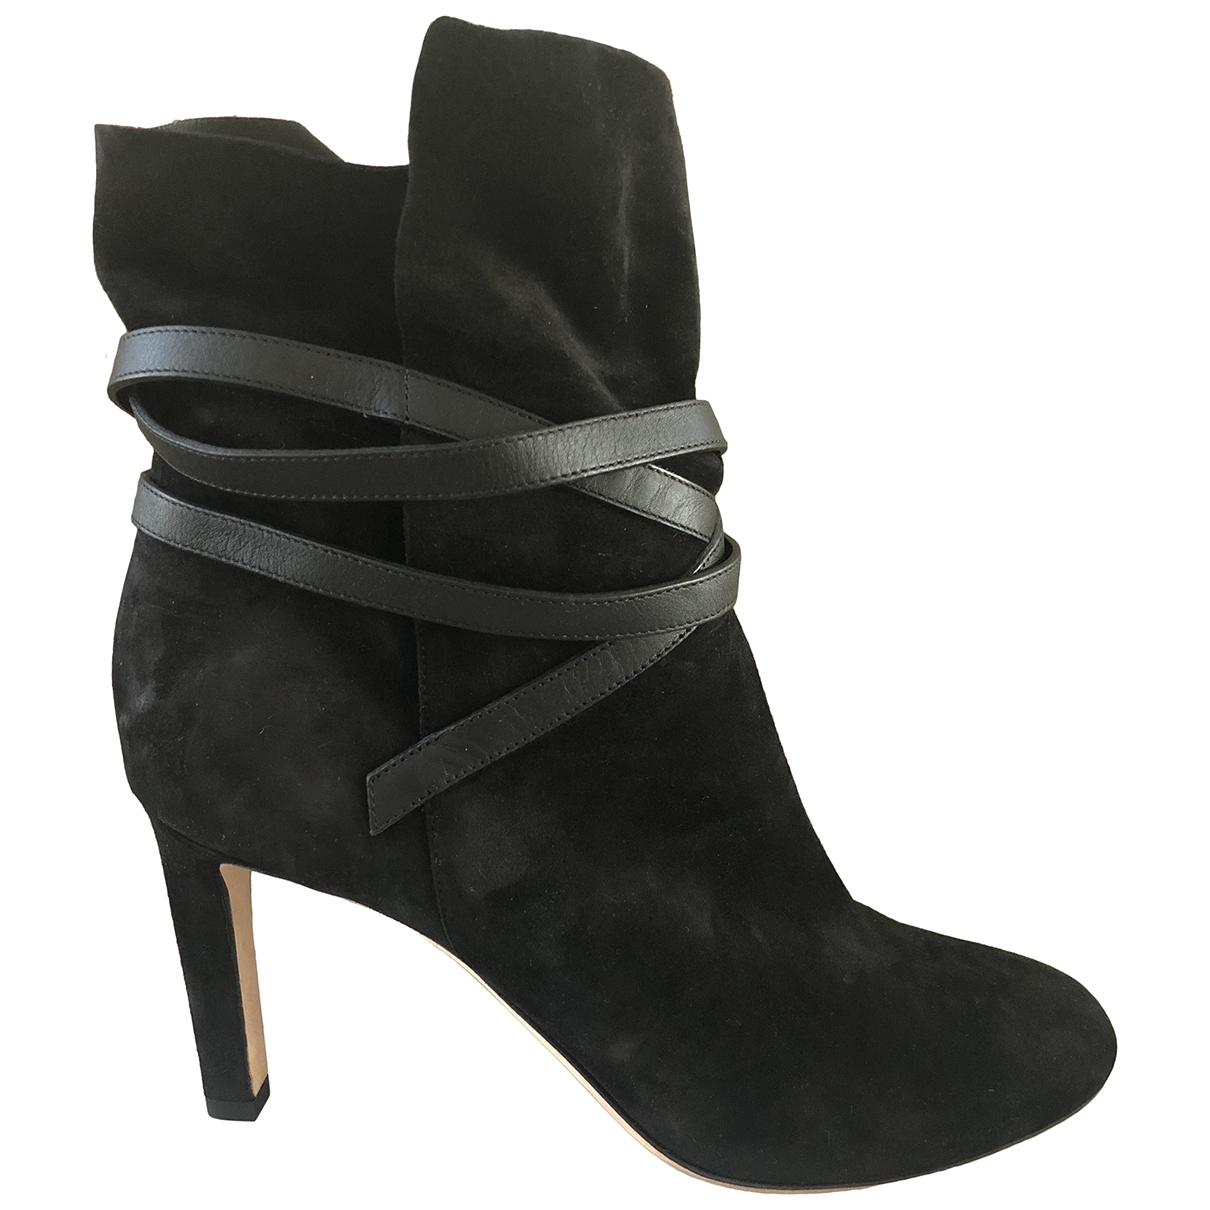 Jimmy Choo \N Black Suede Ankle boots for Women 37.5 EU